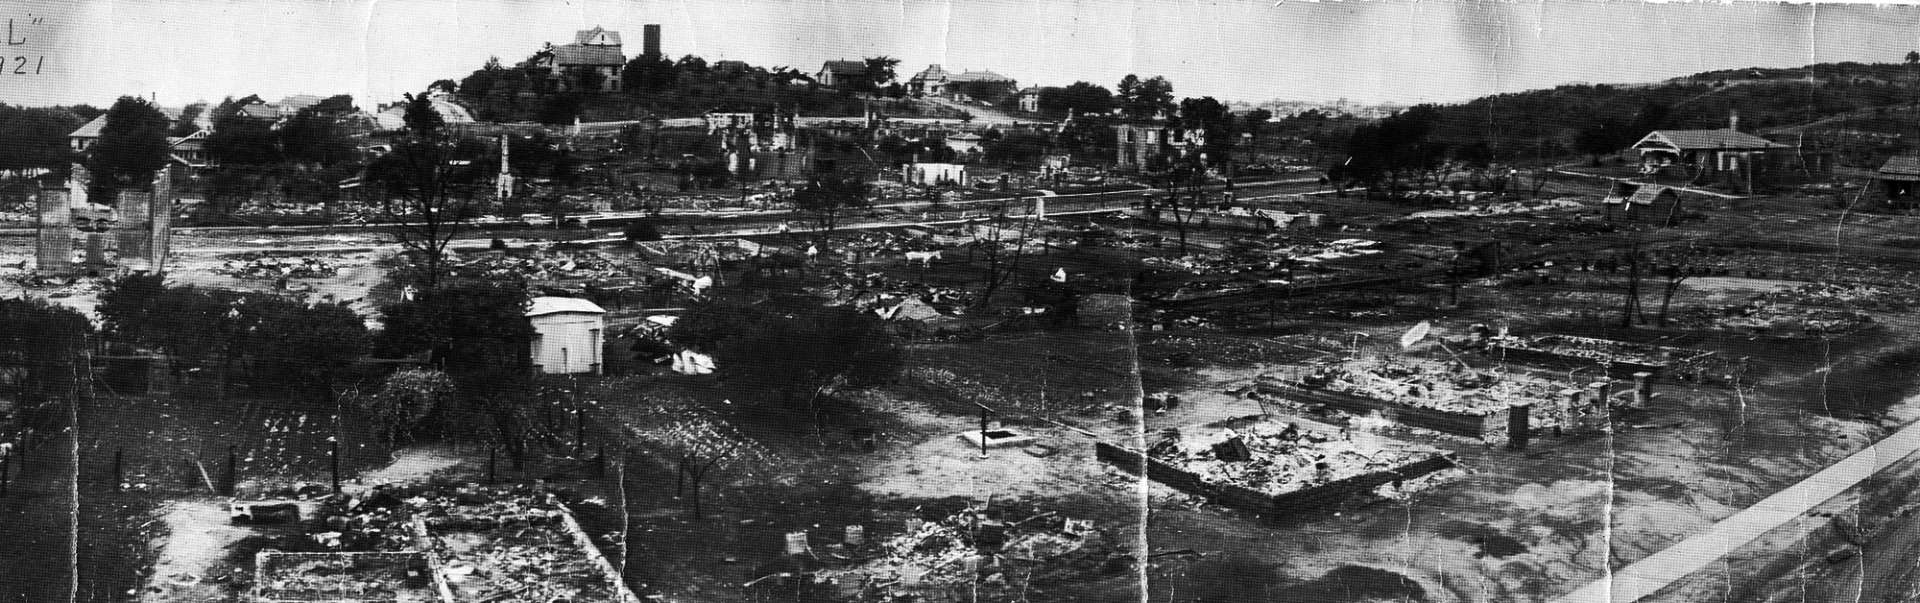 The destruction of Black Wall Street during the Tulsa Race Massacre, 1921. Image: Standpipe Hill destruction [source: OSU Digital Collections].